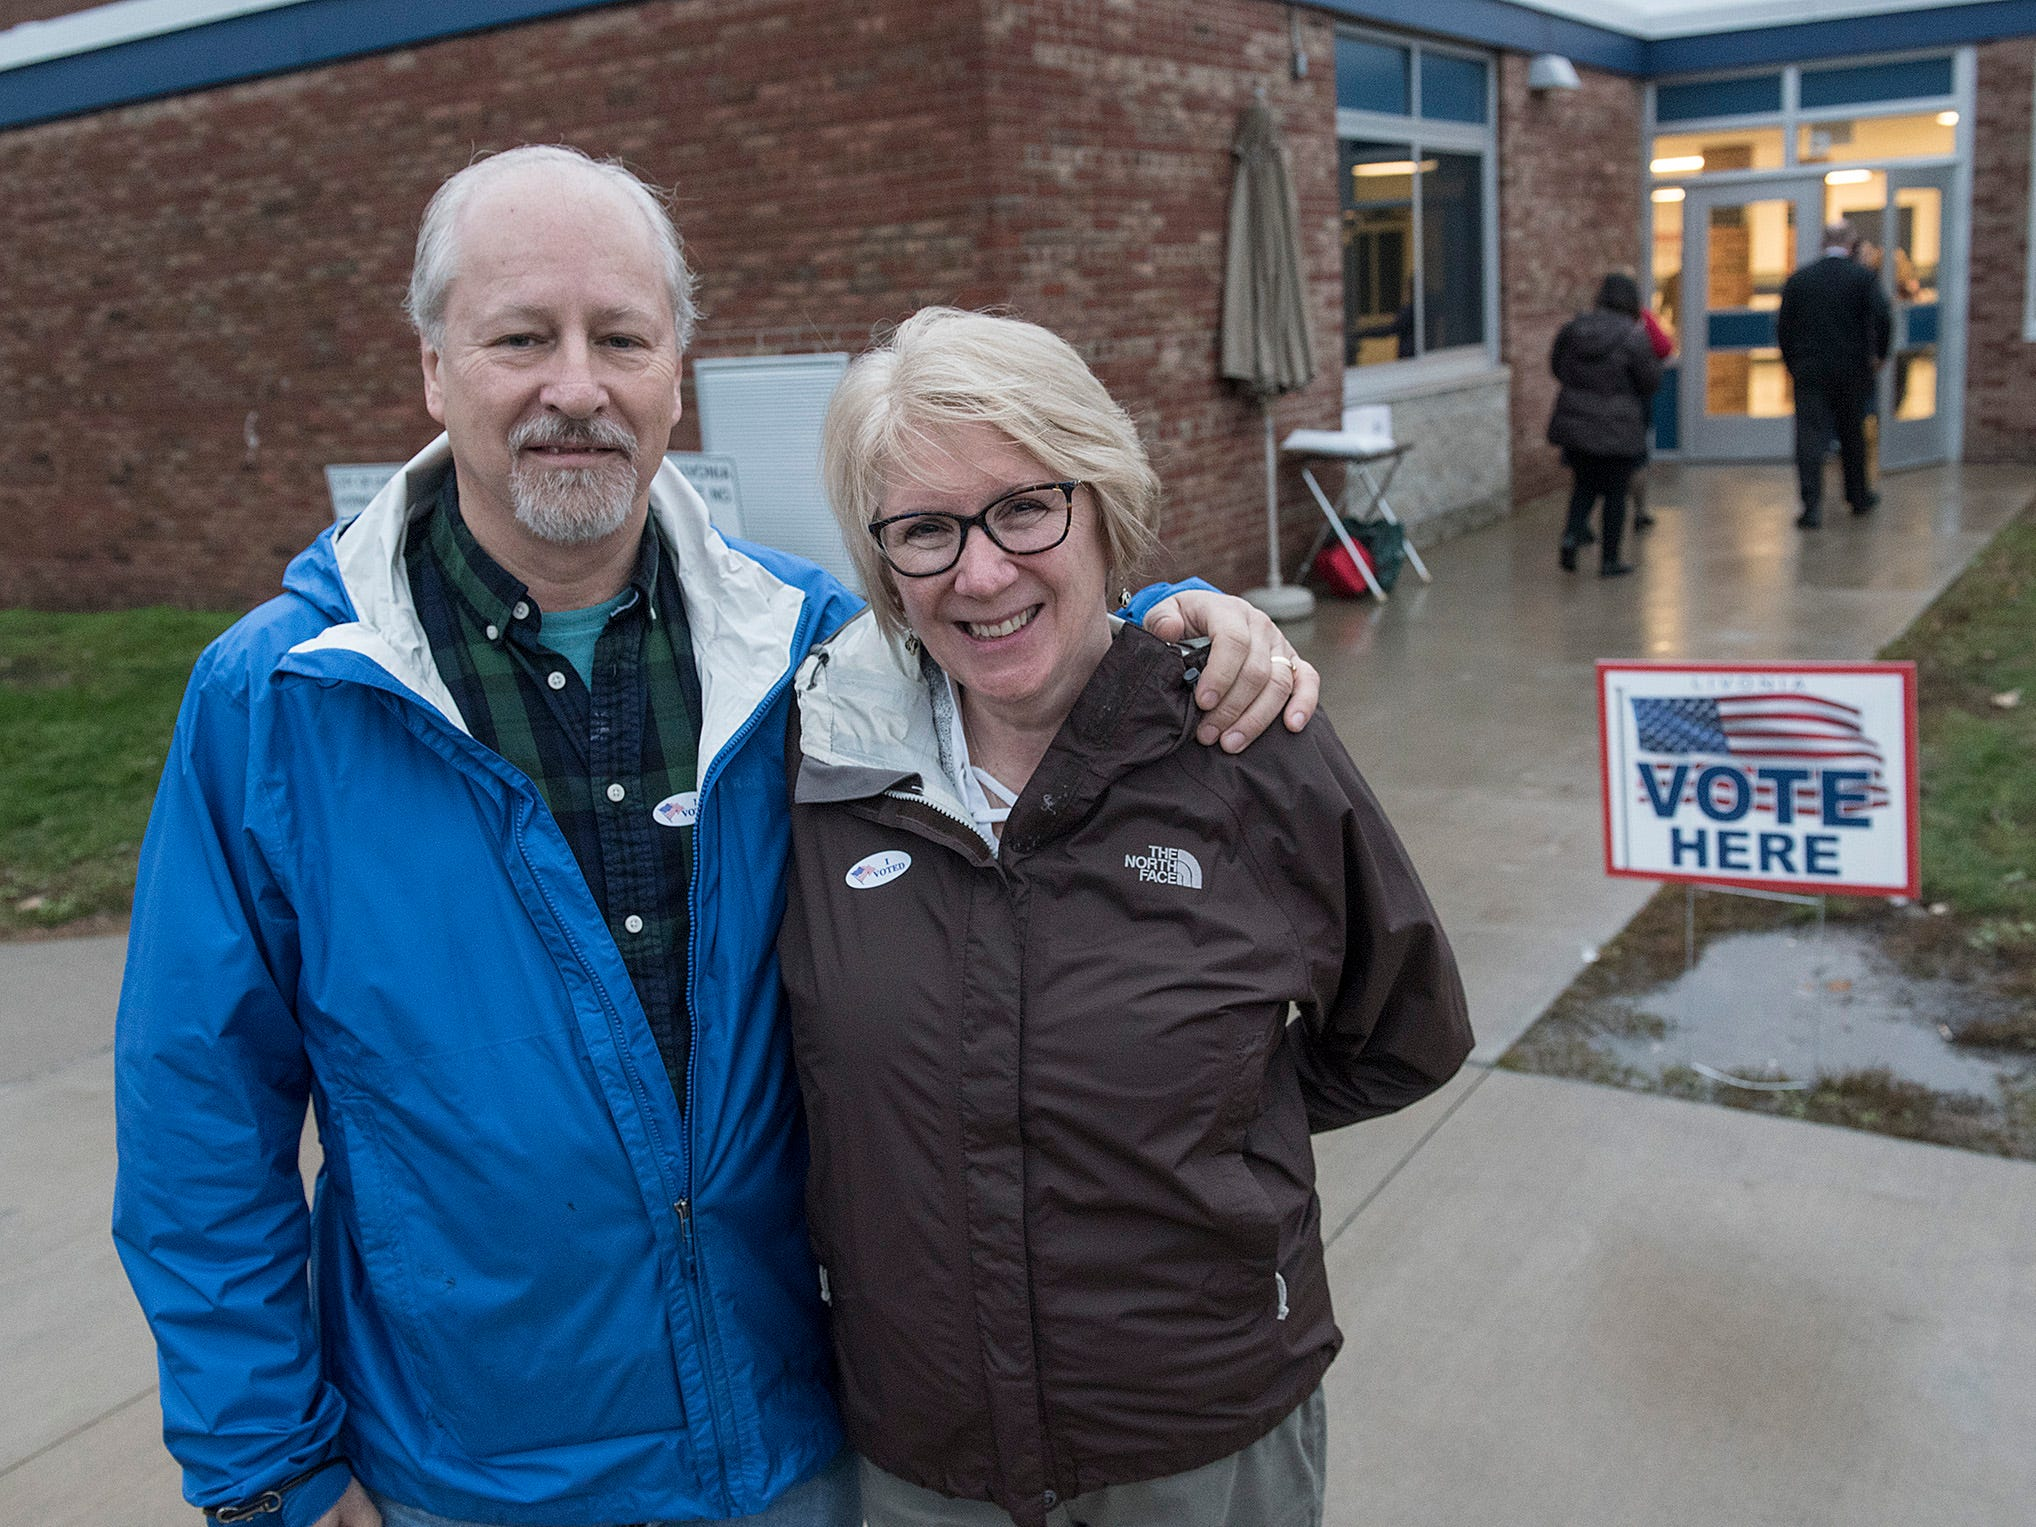 7:20am: John and Karin Baugher have voted at Riley Upper Elementary in Livonia. In spite of long lines, they are out in 20 minutes.